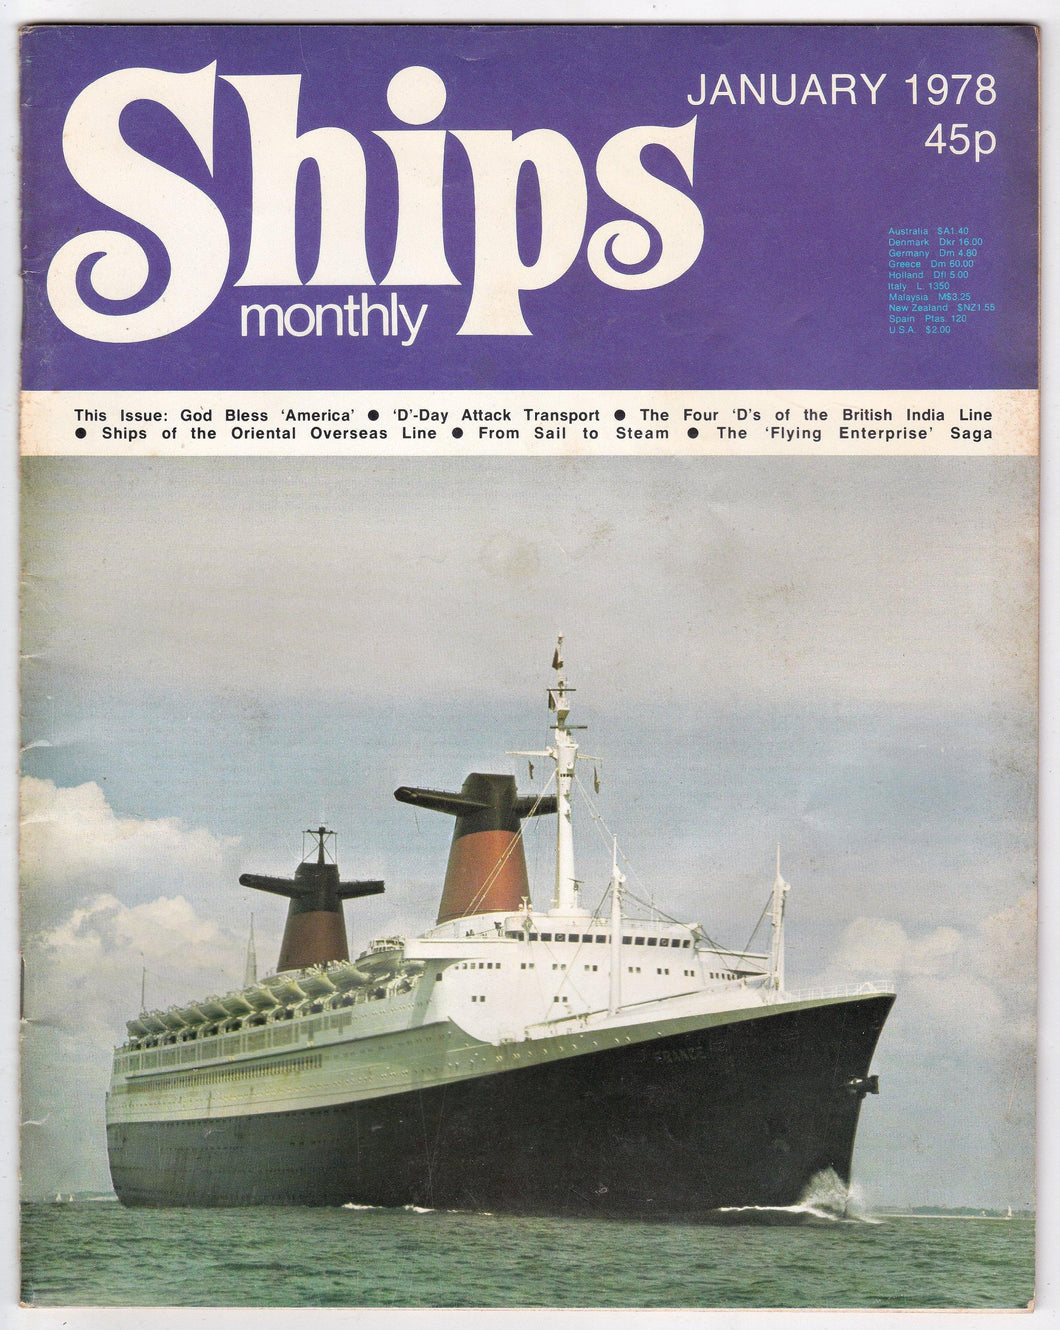 Ships Monthly Magazine January 1978 ss France ss America Orient Overseas Line British India Line Ark Yoyal - TulipStuff